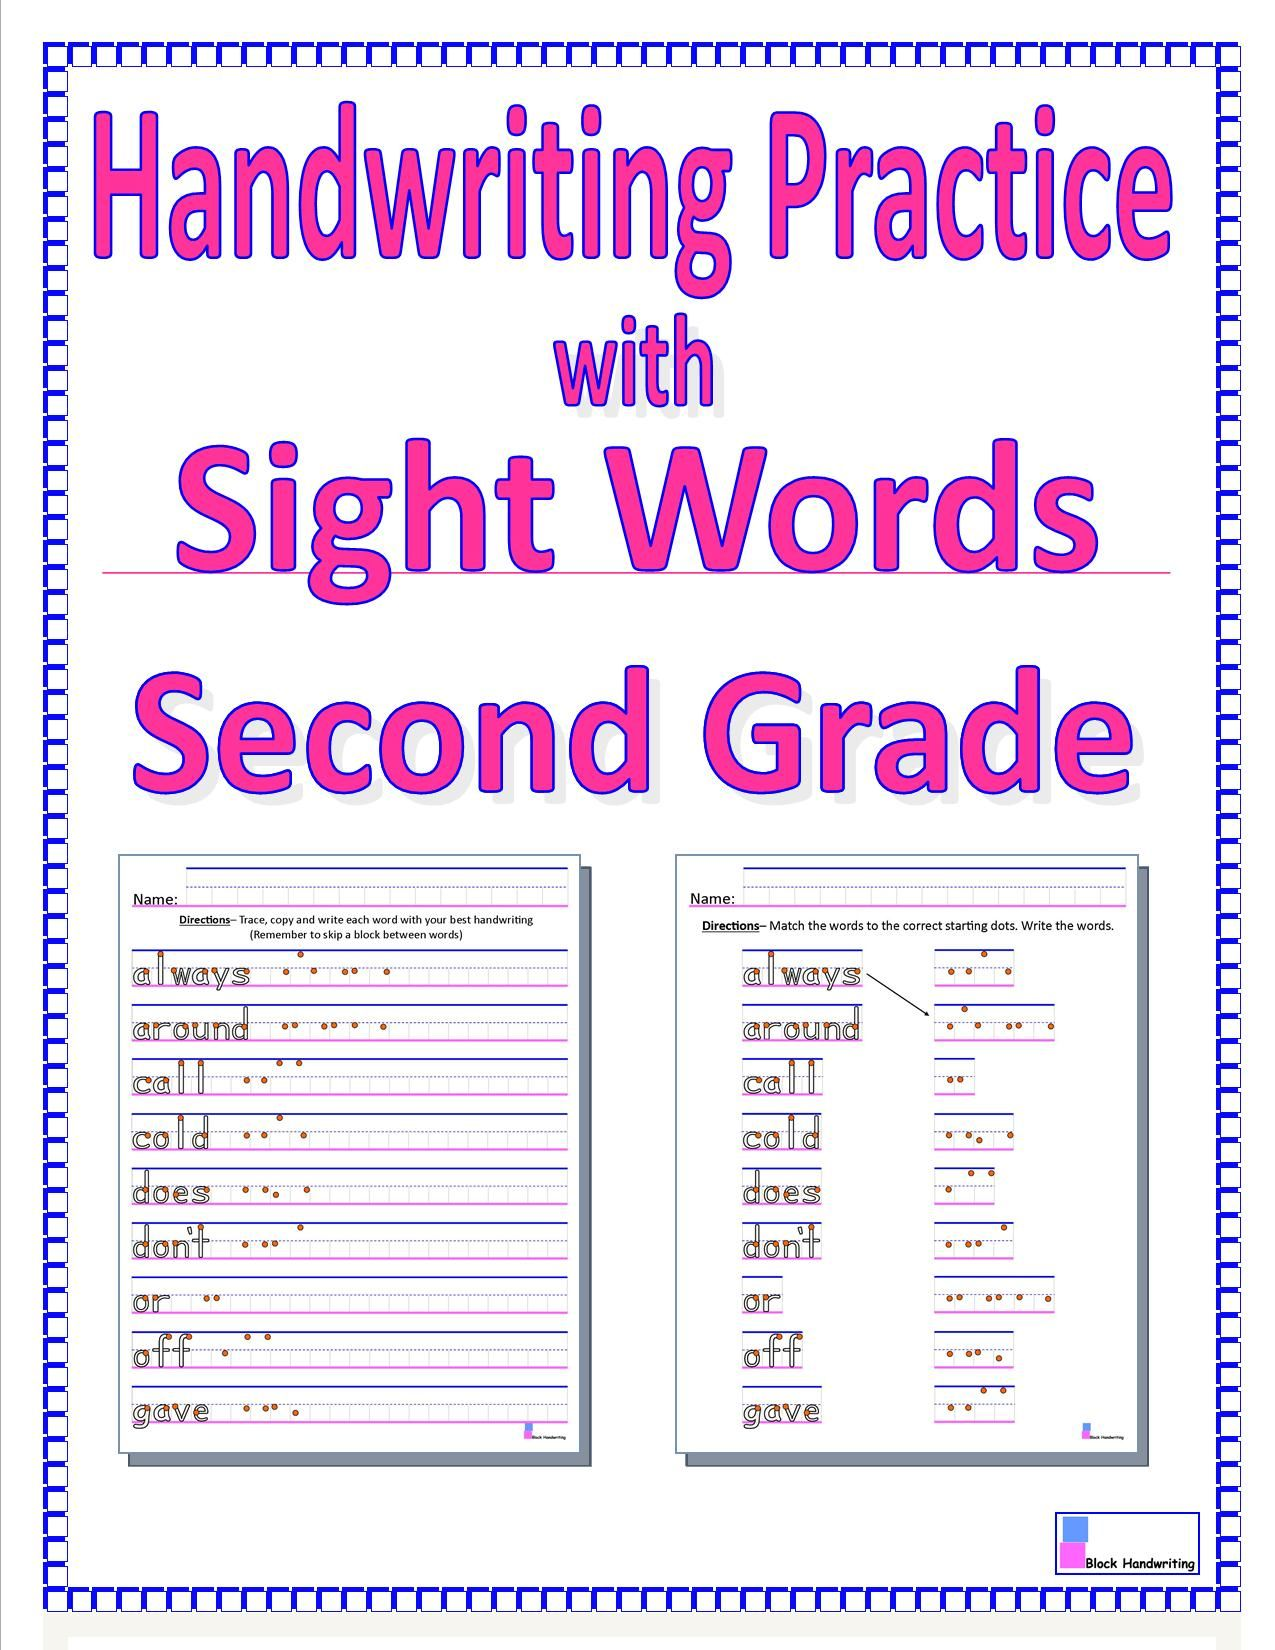 hight resolution of 2nd grade sight words   Handwriting Practice with Second Grade Sight Words    Writing practice worksheets